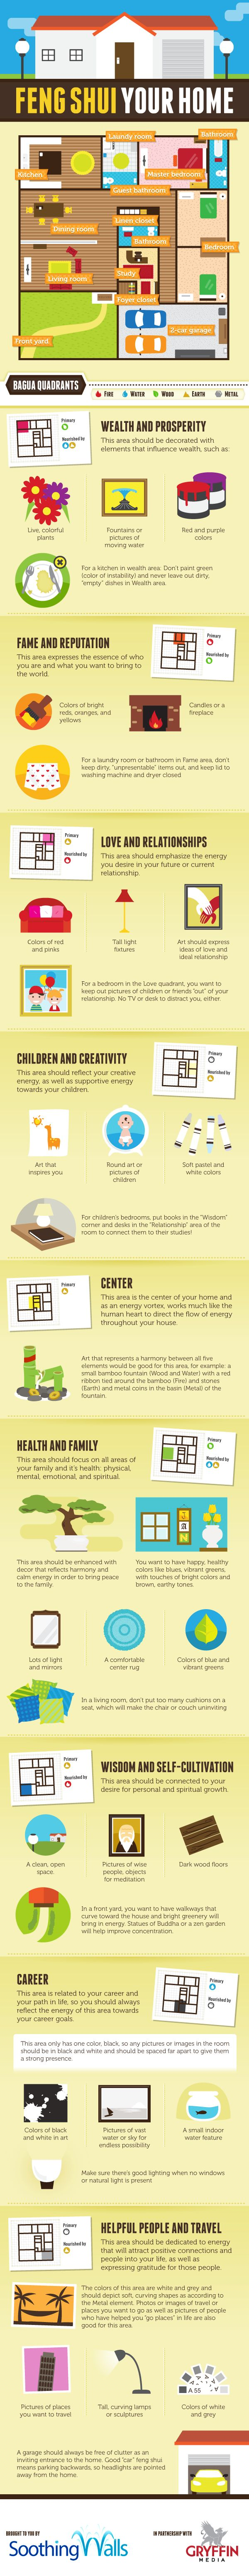 382 best Feng Shui images on Pinterest | Feng shui tips, Feng shui ...